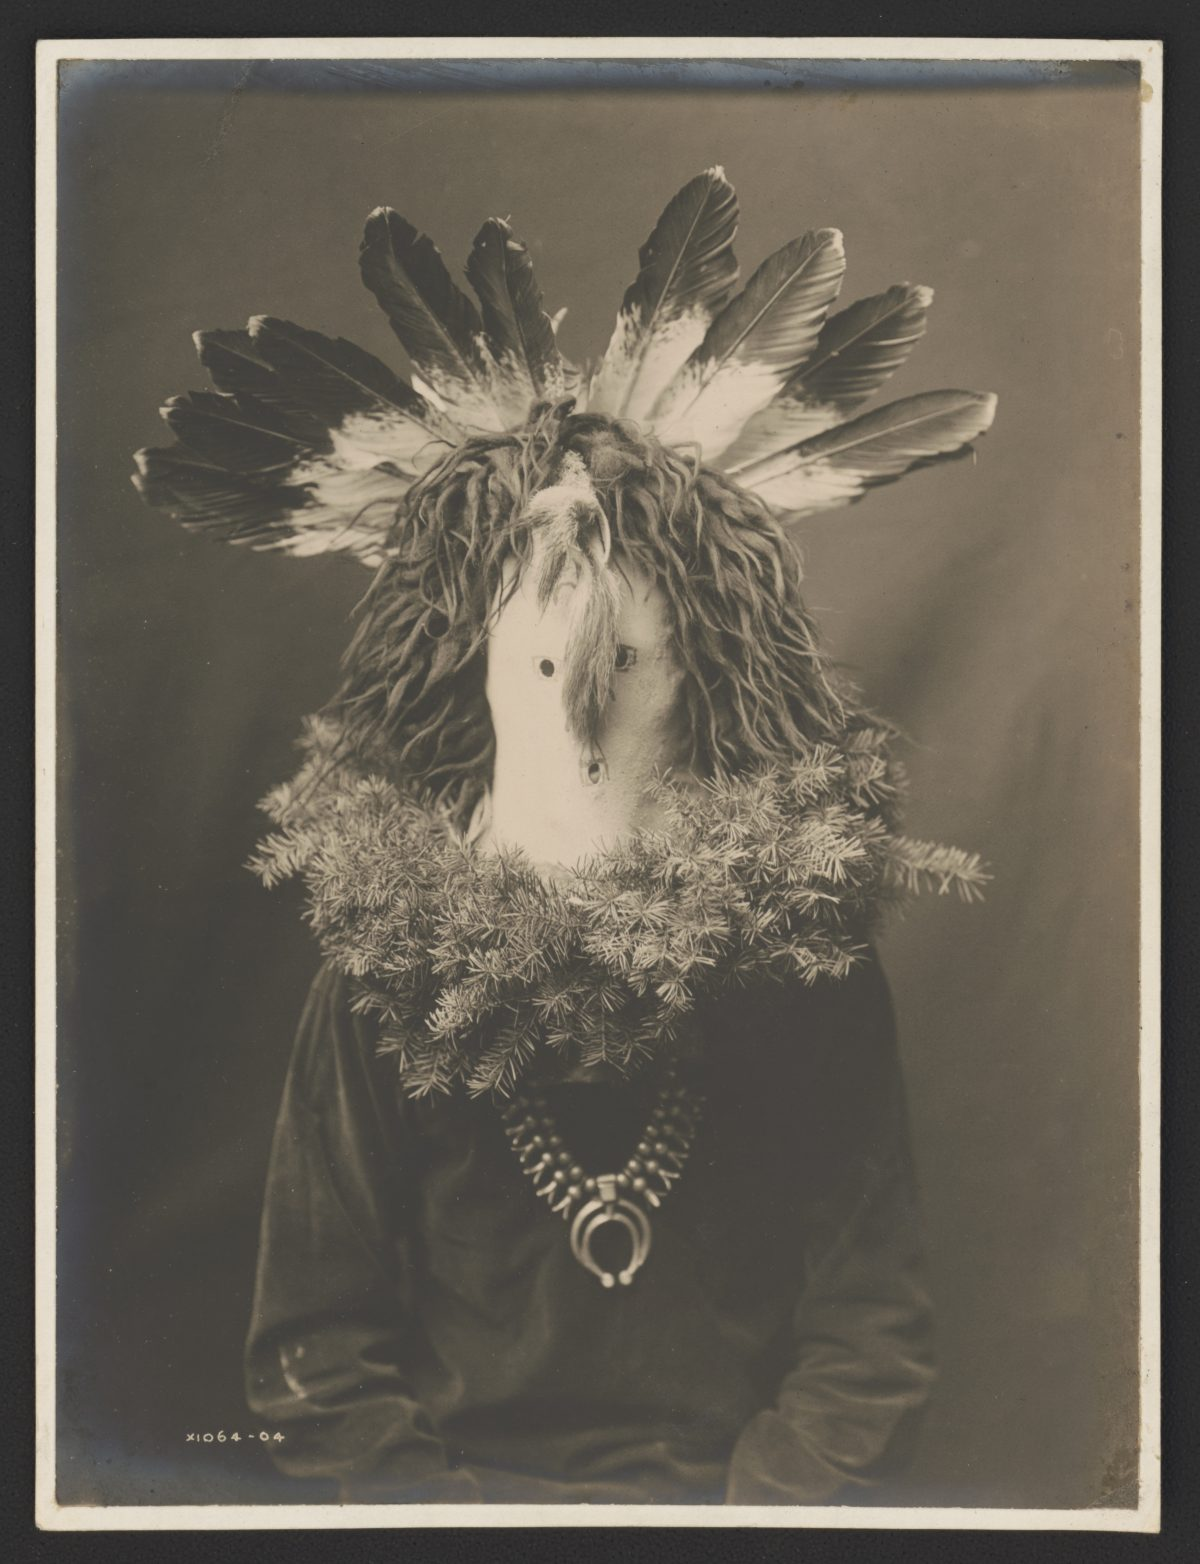 Title Haschogan (House God) - The Yebichai Hunchback Summary Photograph shows a Navajo man, half-length, seated, facing front, wearing a ceremonial mask with feathers and with fir or spruce branches forming a wreath around the shoulders. Contributor Names Curtis, Edward S., 1868-1952, photographer Created / Published [1904]